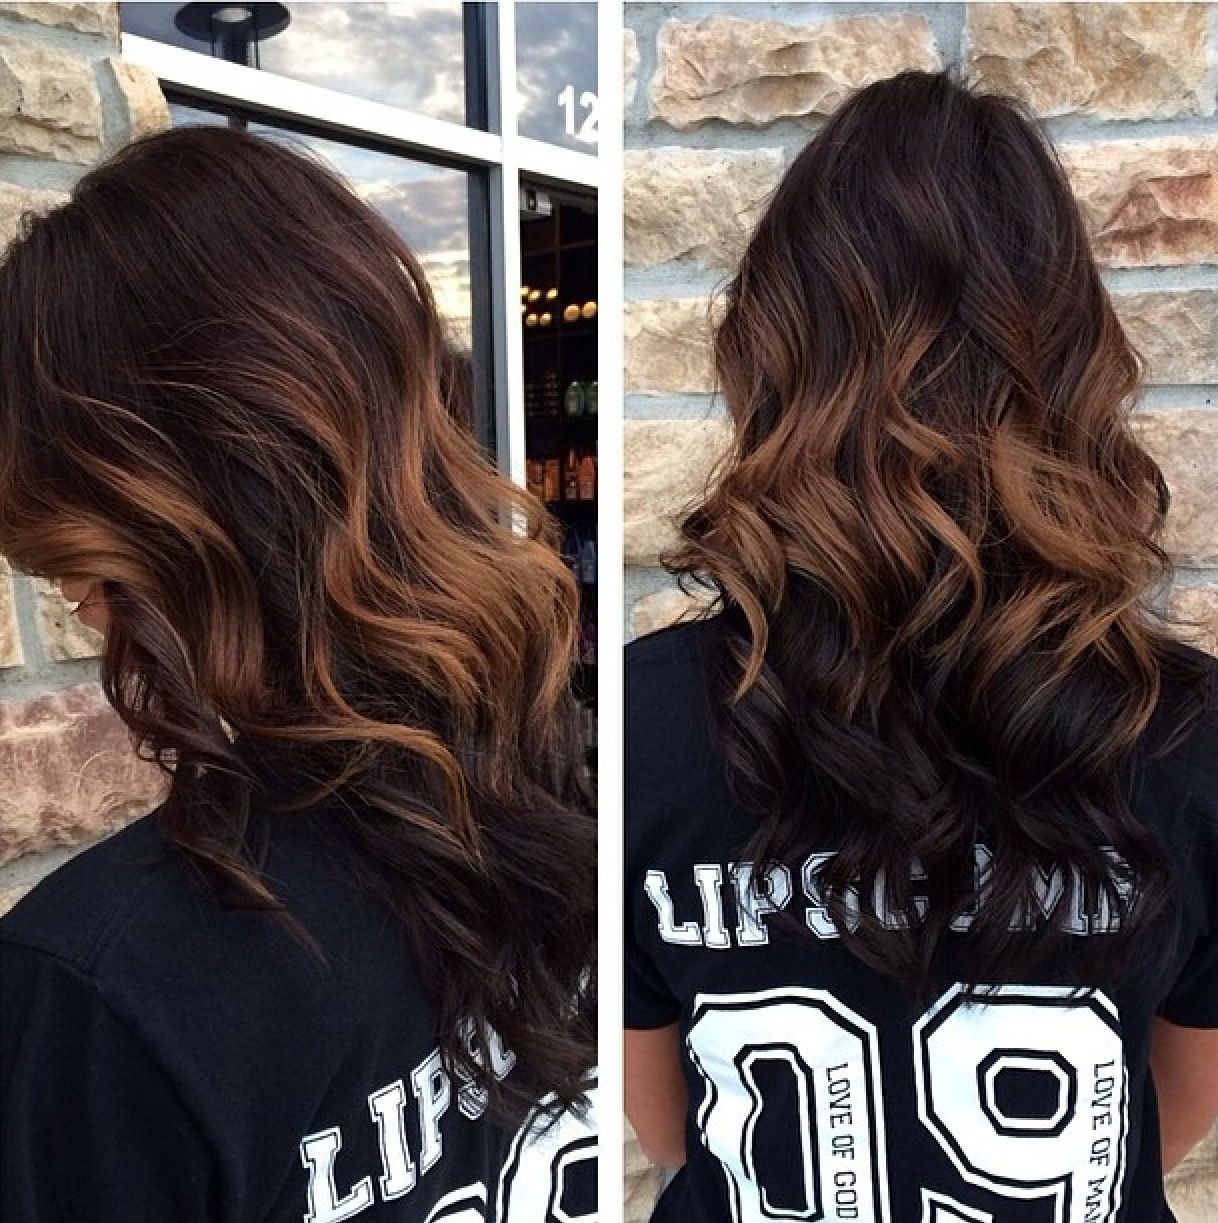 Splashlight Hair Trend – What It Is And Pictures